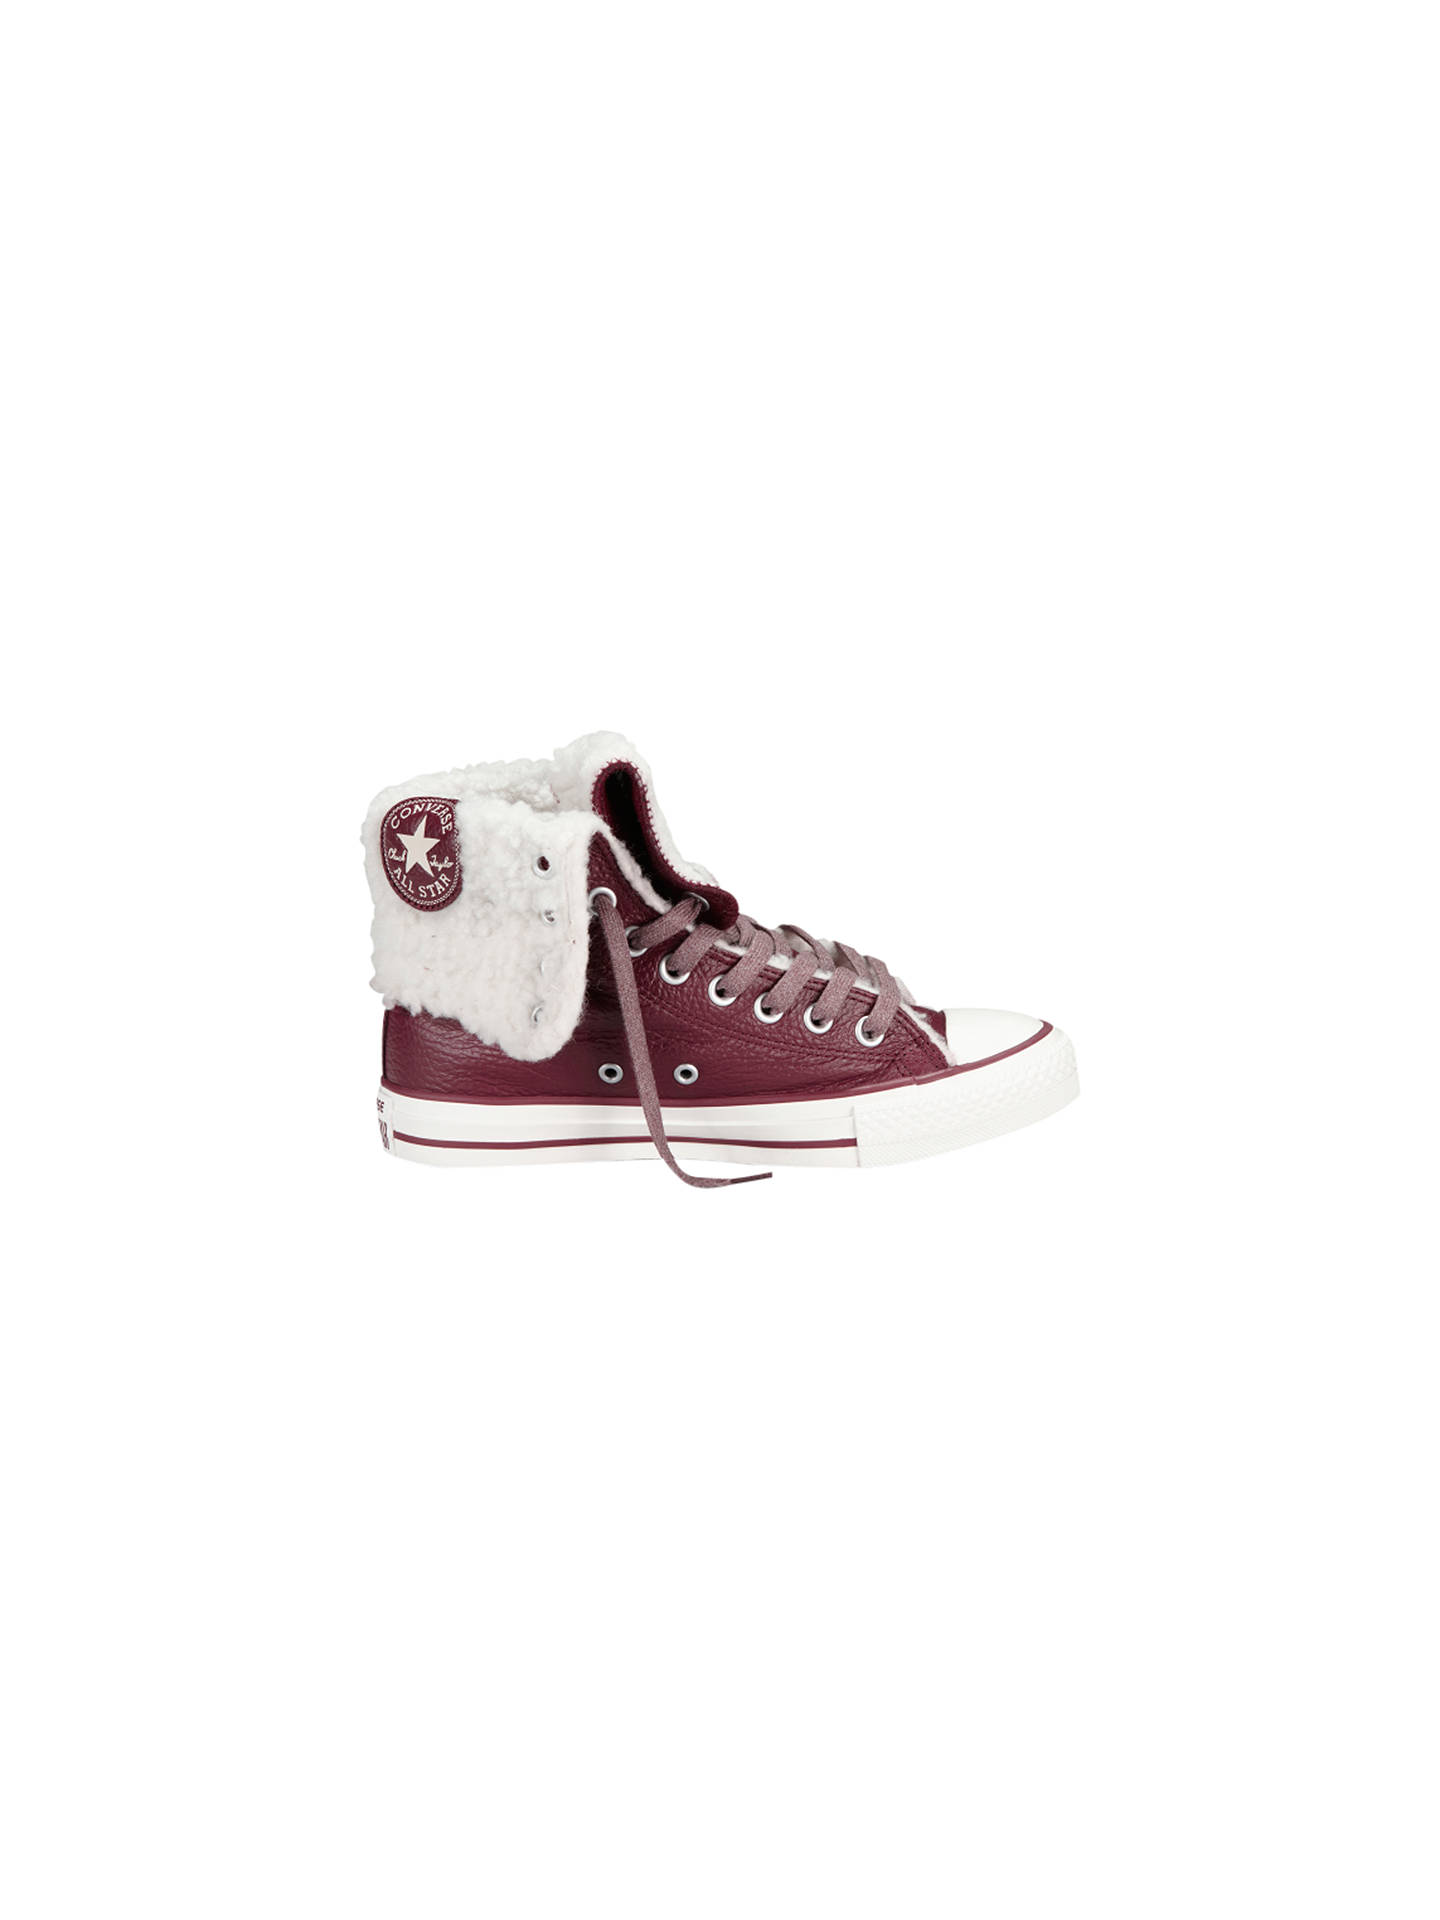 c2a6d08b24c1fb Converse Chuck Taylor All Stars Oxhearth Hi-Top Leather Trainers ...